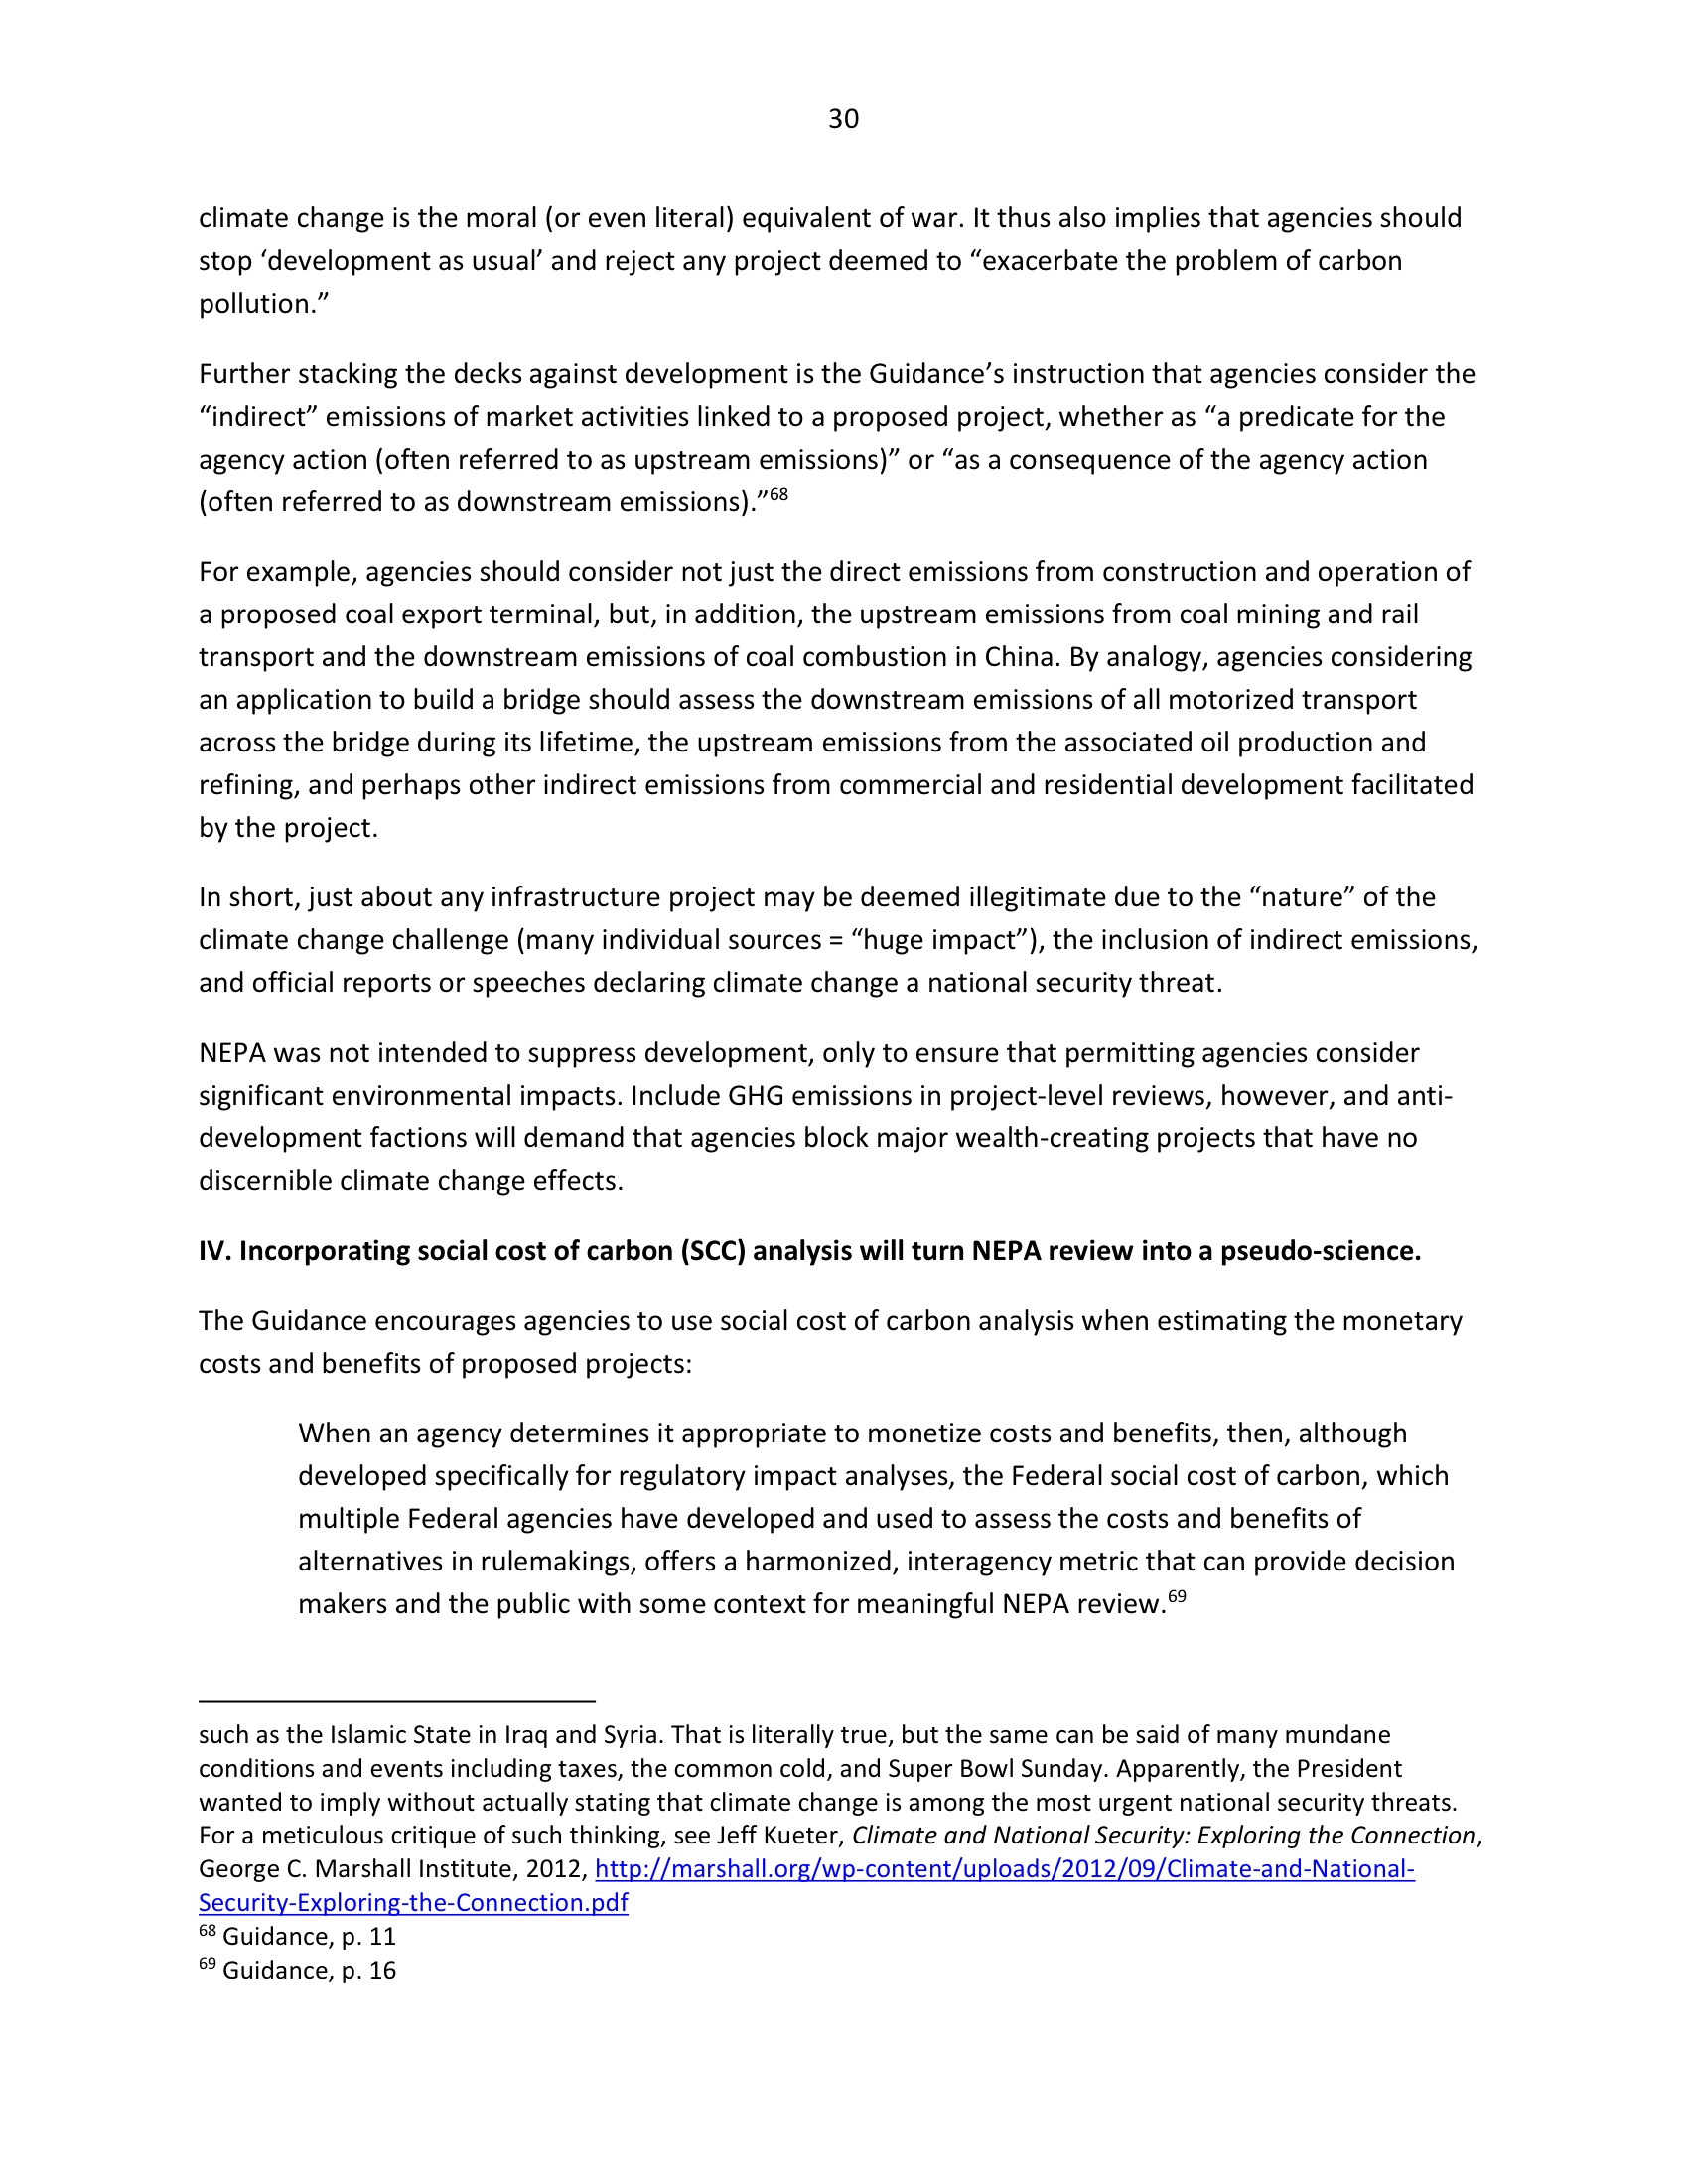 Marlo Lewis Competitive Enterprise Institute and Free Market Allies Comment Letter on NEPA GHG Guidance Document 102-30